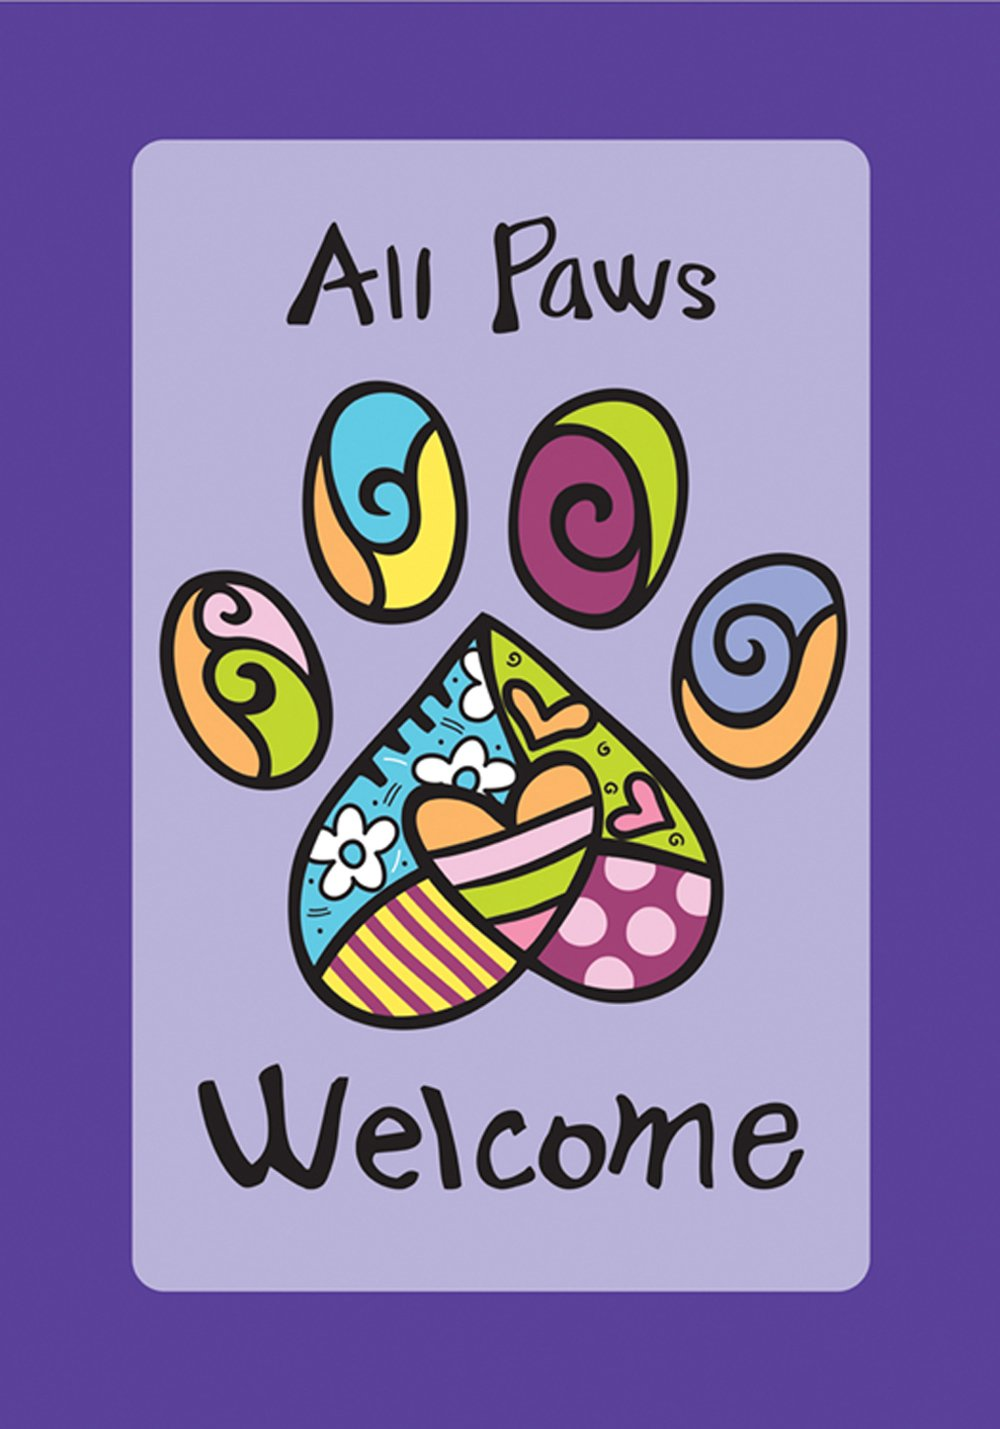 Toland Home Garden 112669 Toland-Welcome Paws Purple-Decorative Double Sided Pet Dog Cat Animal USA-Produced Garden Flag